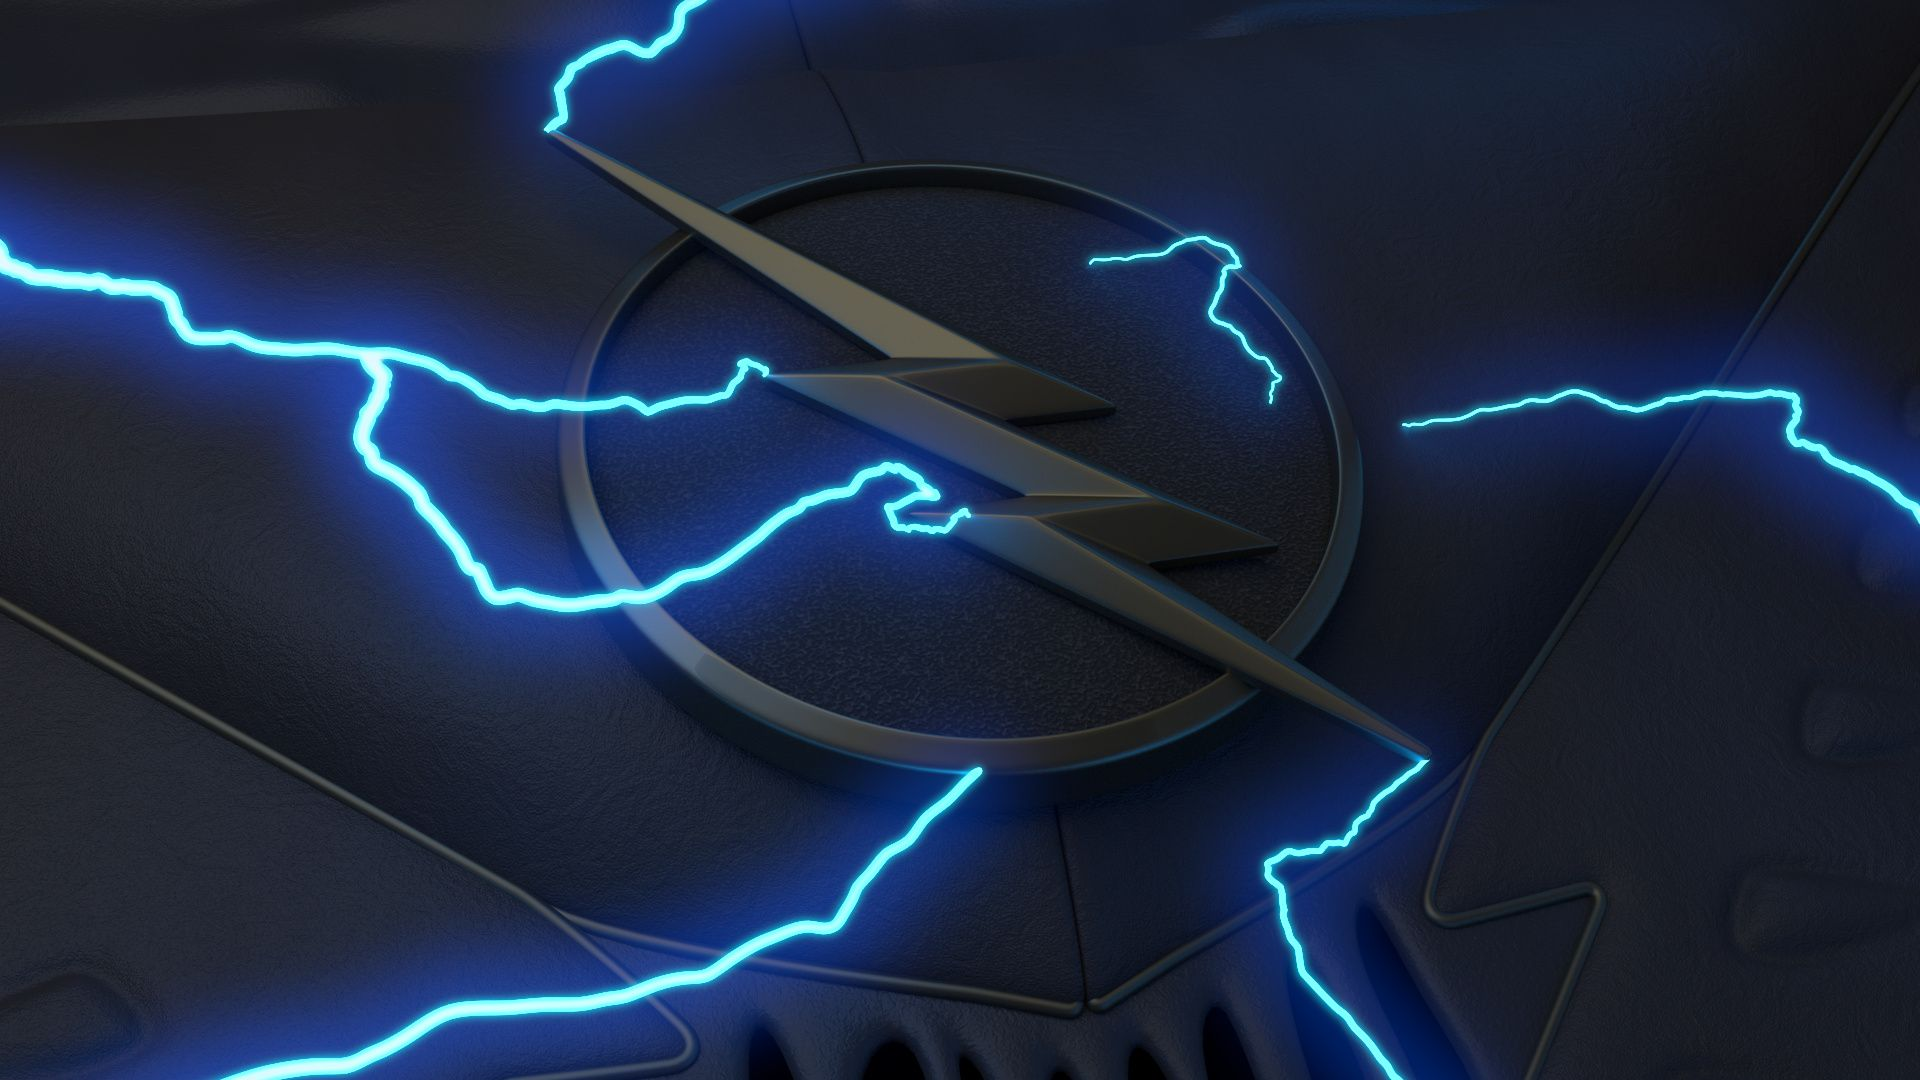 Electrified 3d Zoom Wallpaper 1080p More Sizes And Another